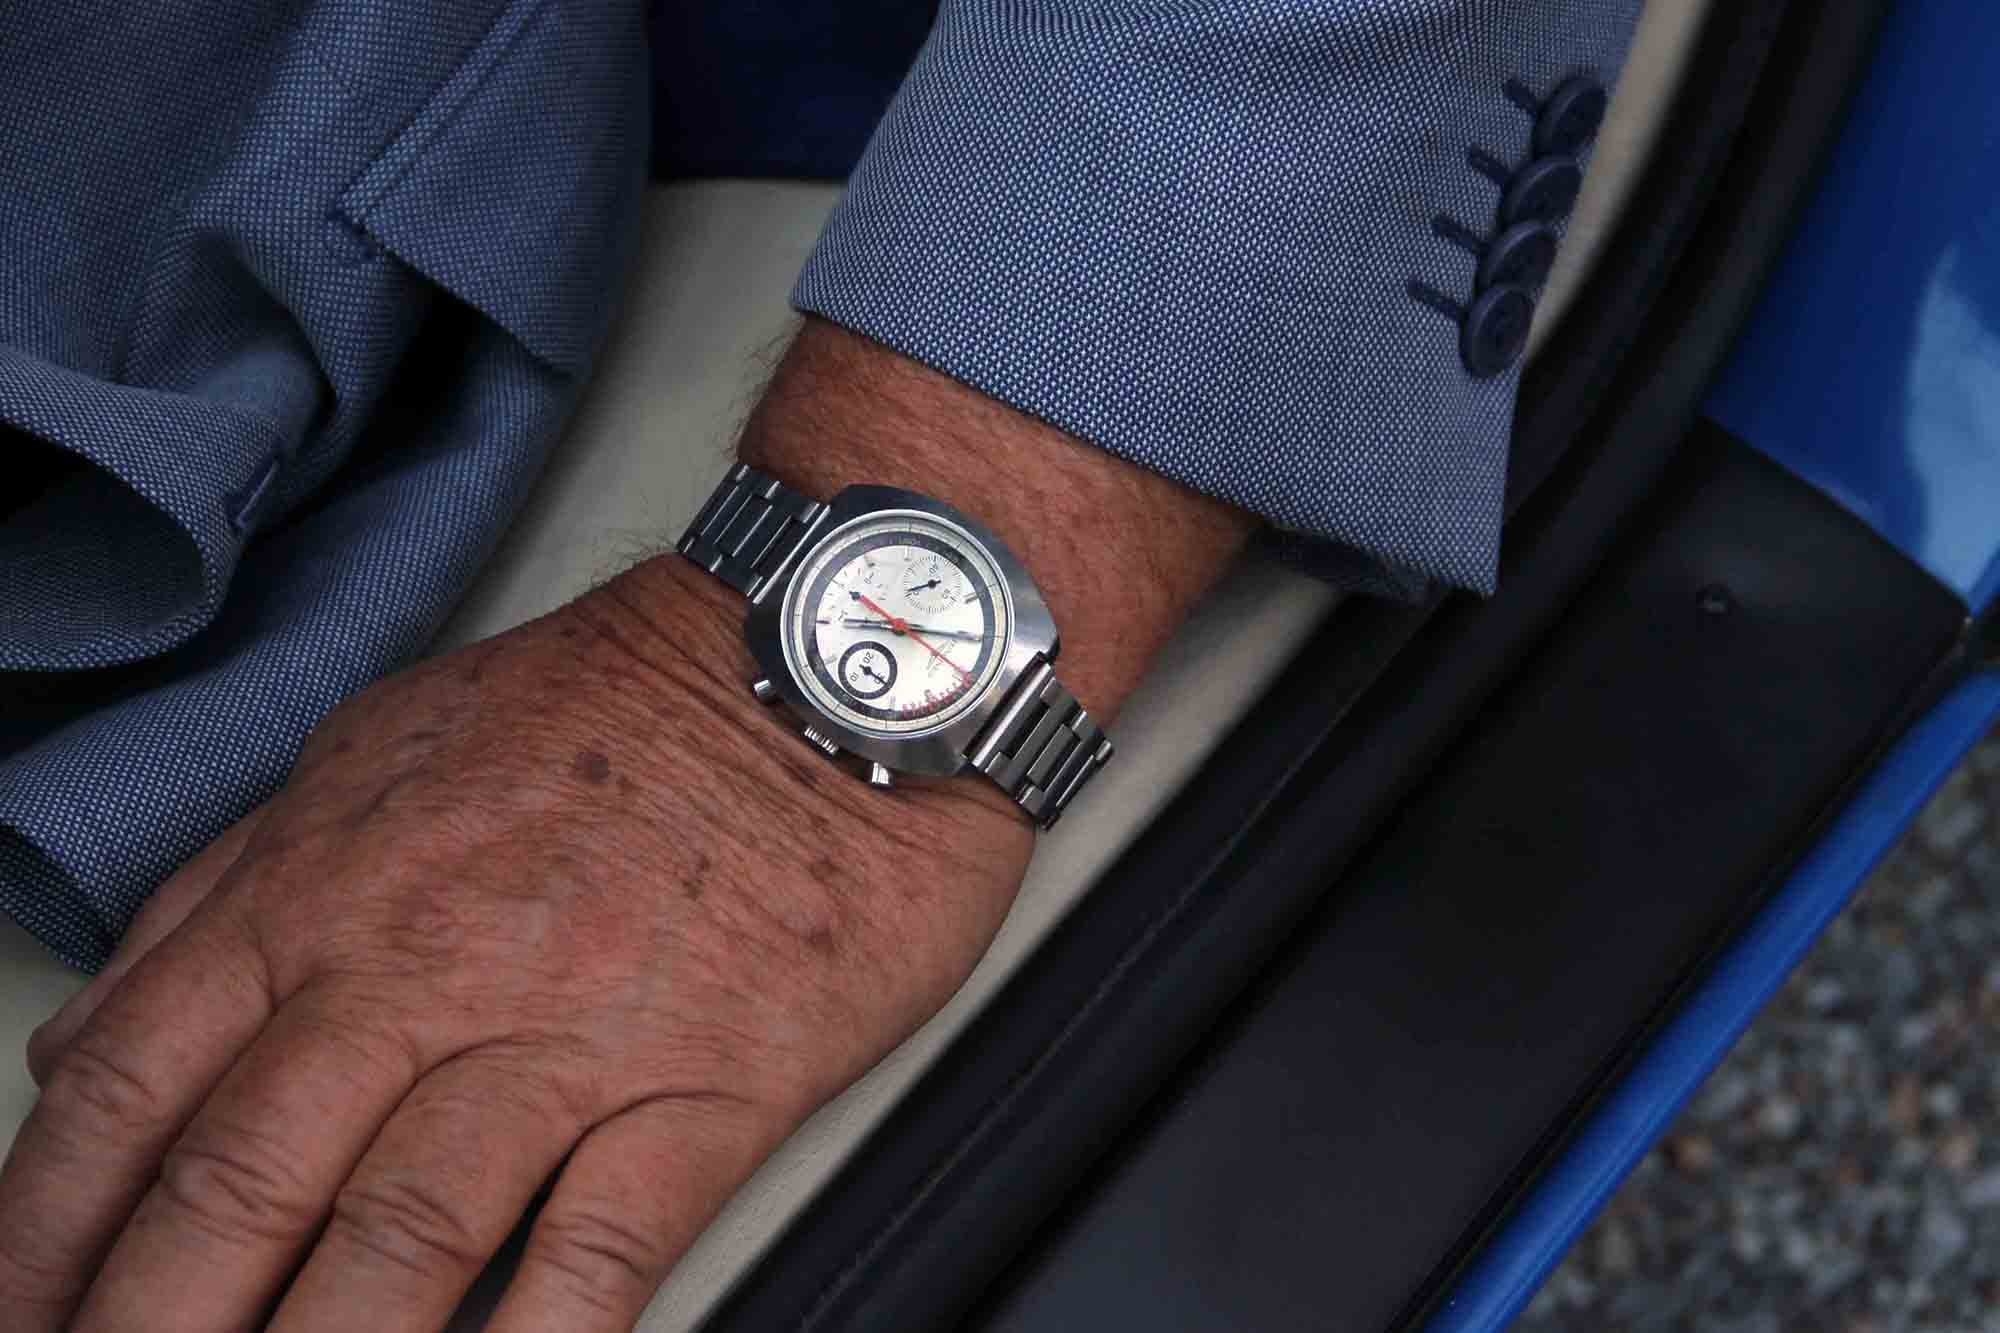 The Longines Nonius reference 8271 on the wrist of Valentino Balboni, Lamborghini's first chief test driver. Photo Report: Watch And Car Spotting At The 2016 Concorso d'Eleganza Villa d'Este With A. Lange & Söhne Photo Report: Watch And Car Spotting At The 2016 Concorso d'Eleganza Villa d'Este With A. Lange & Söhne y